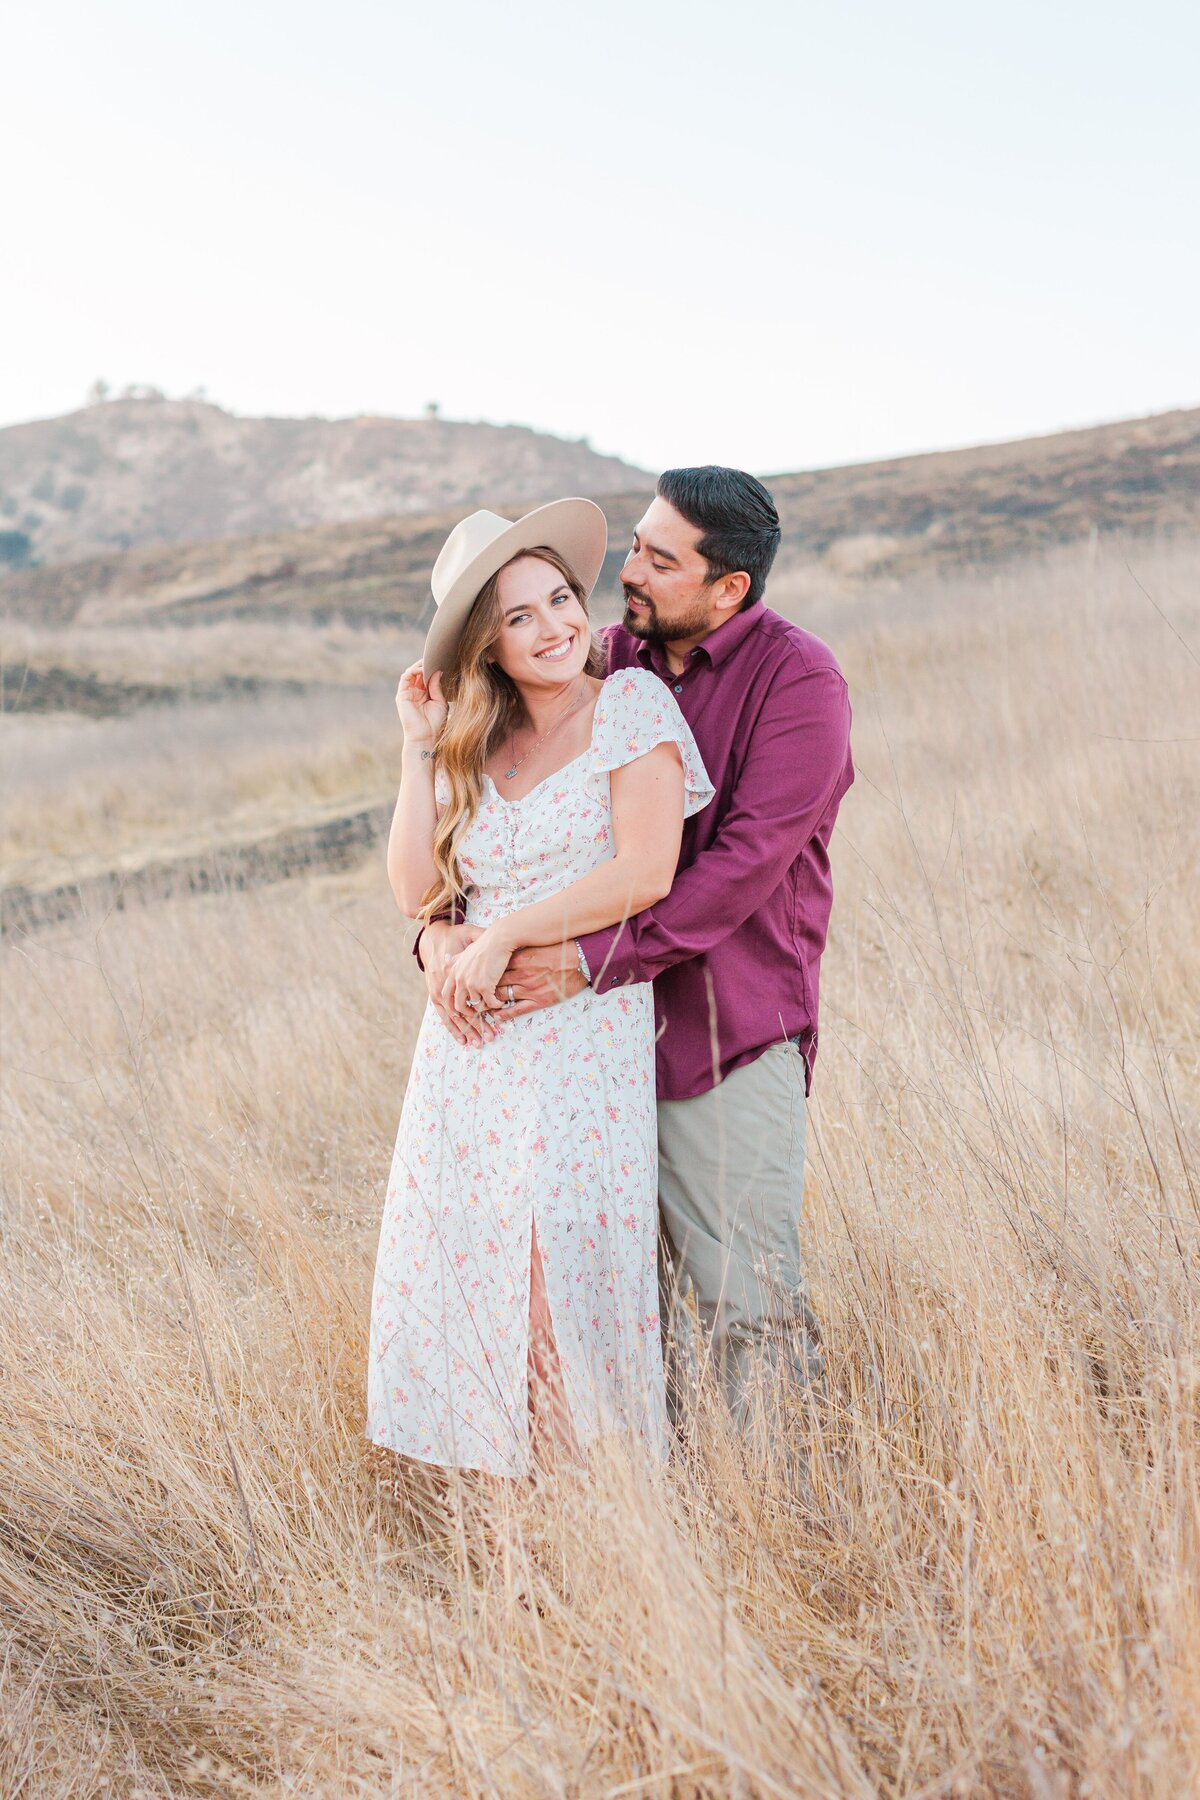 blog-Malibu-State-Creek-Park-Engagament-Shoot-boho-0066